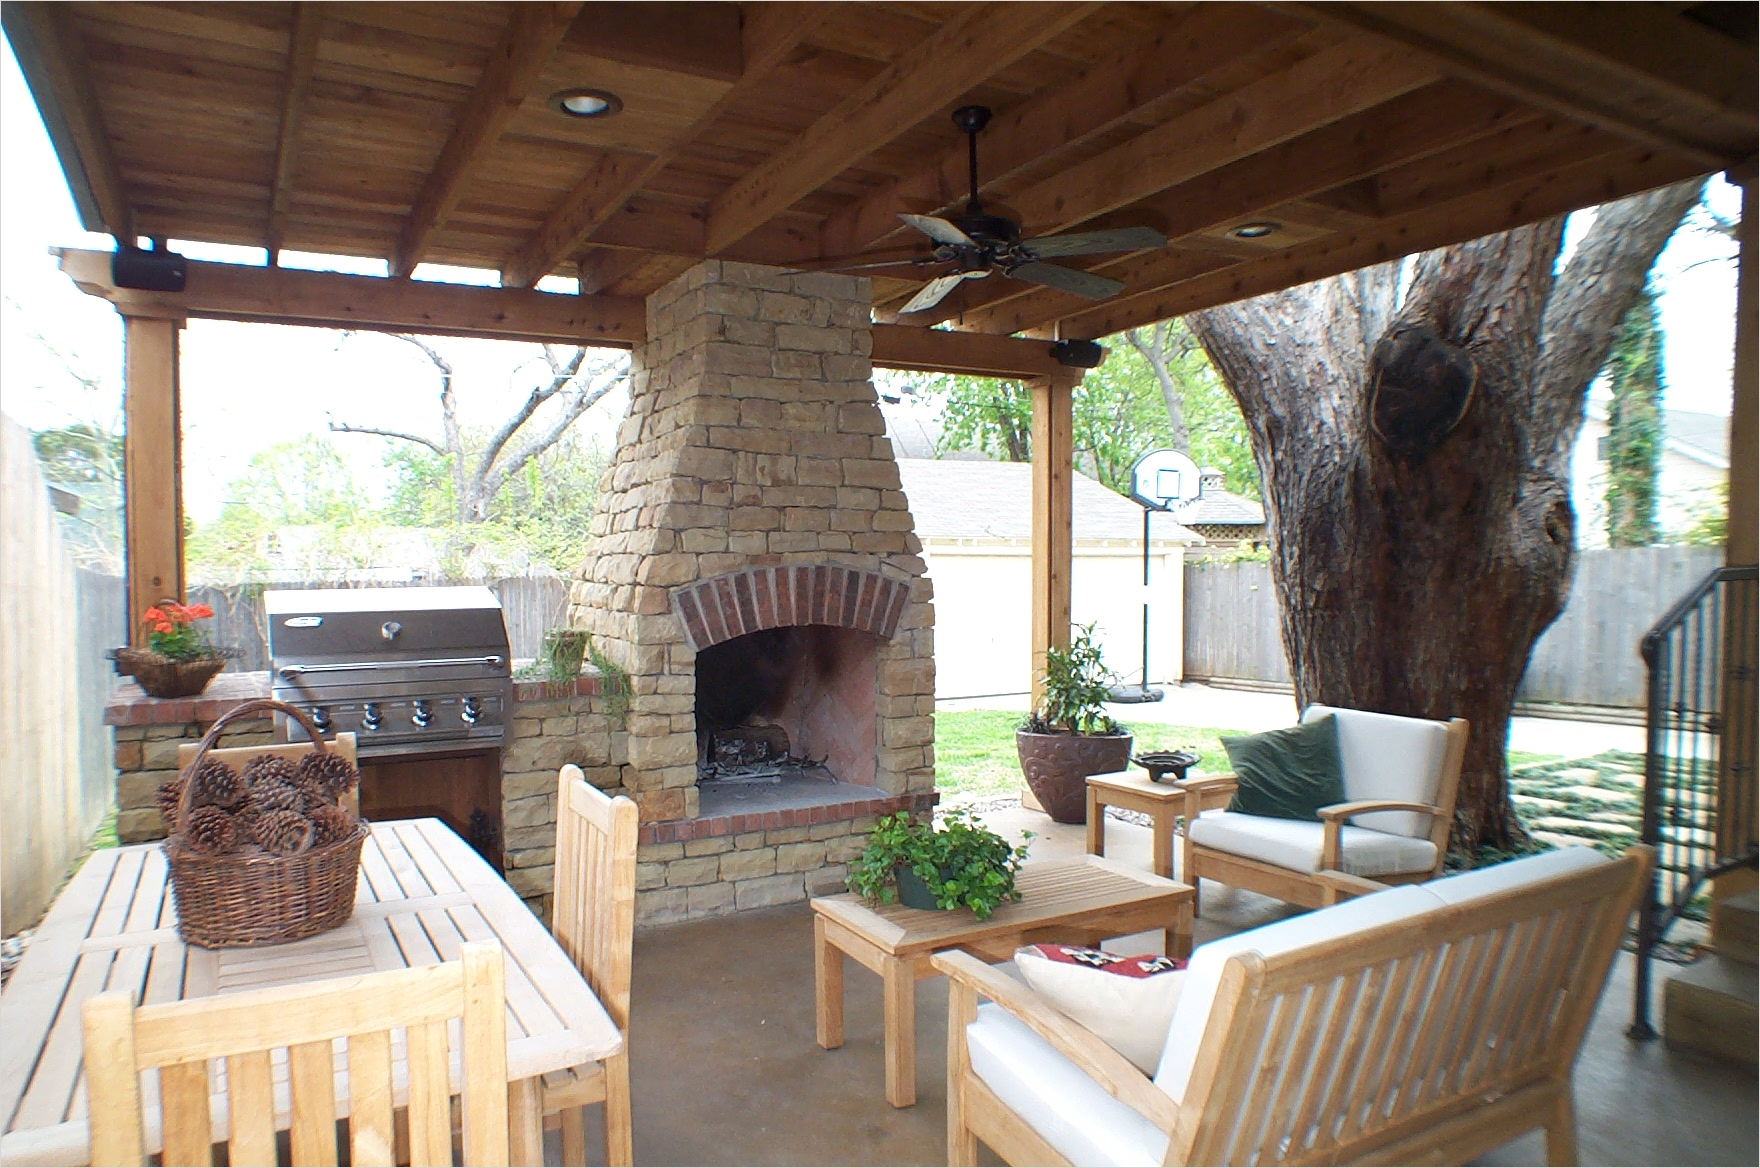 42 Cozy Small Outdoor Living Spaces 99 Living Room Great Outdoor Living Room Outdoor Design Ideas for Small Outdoor Space Covered 5